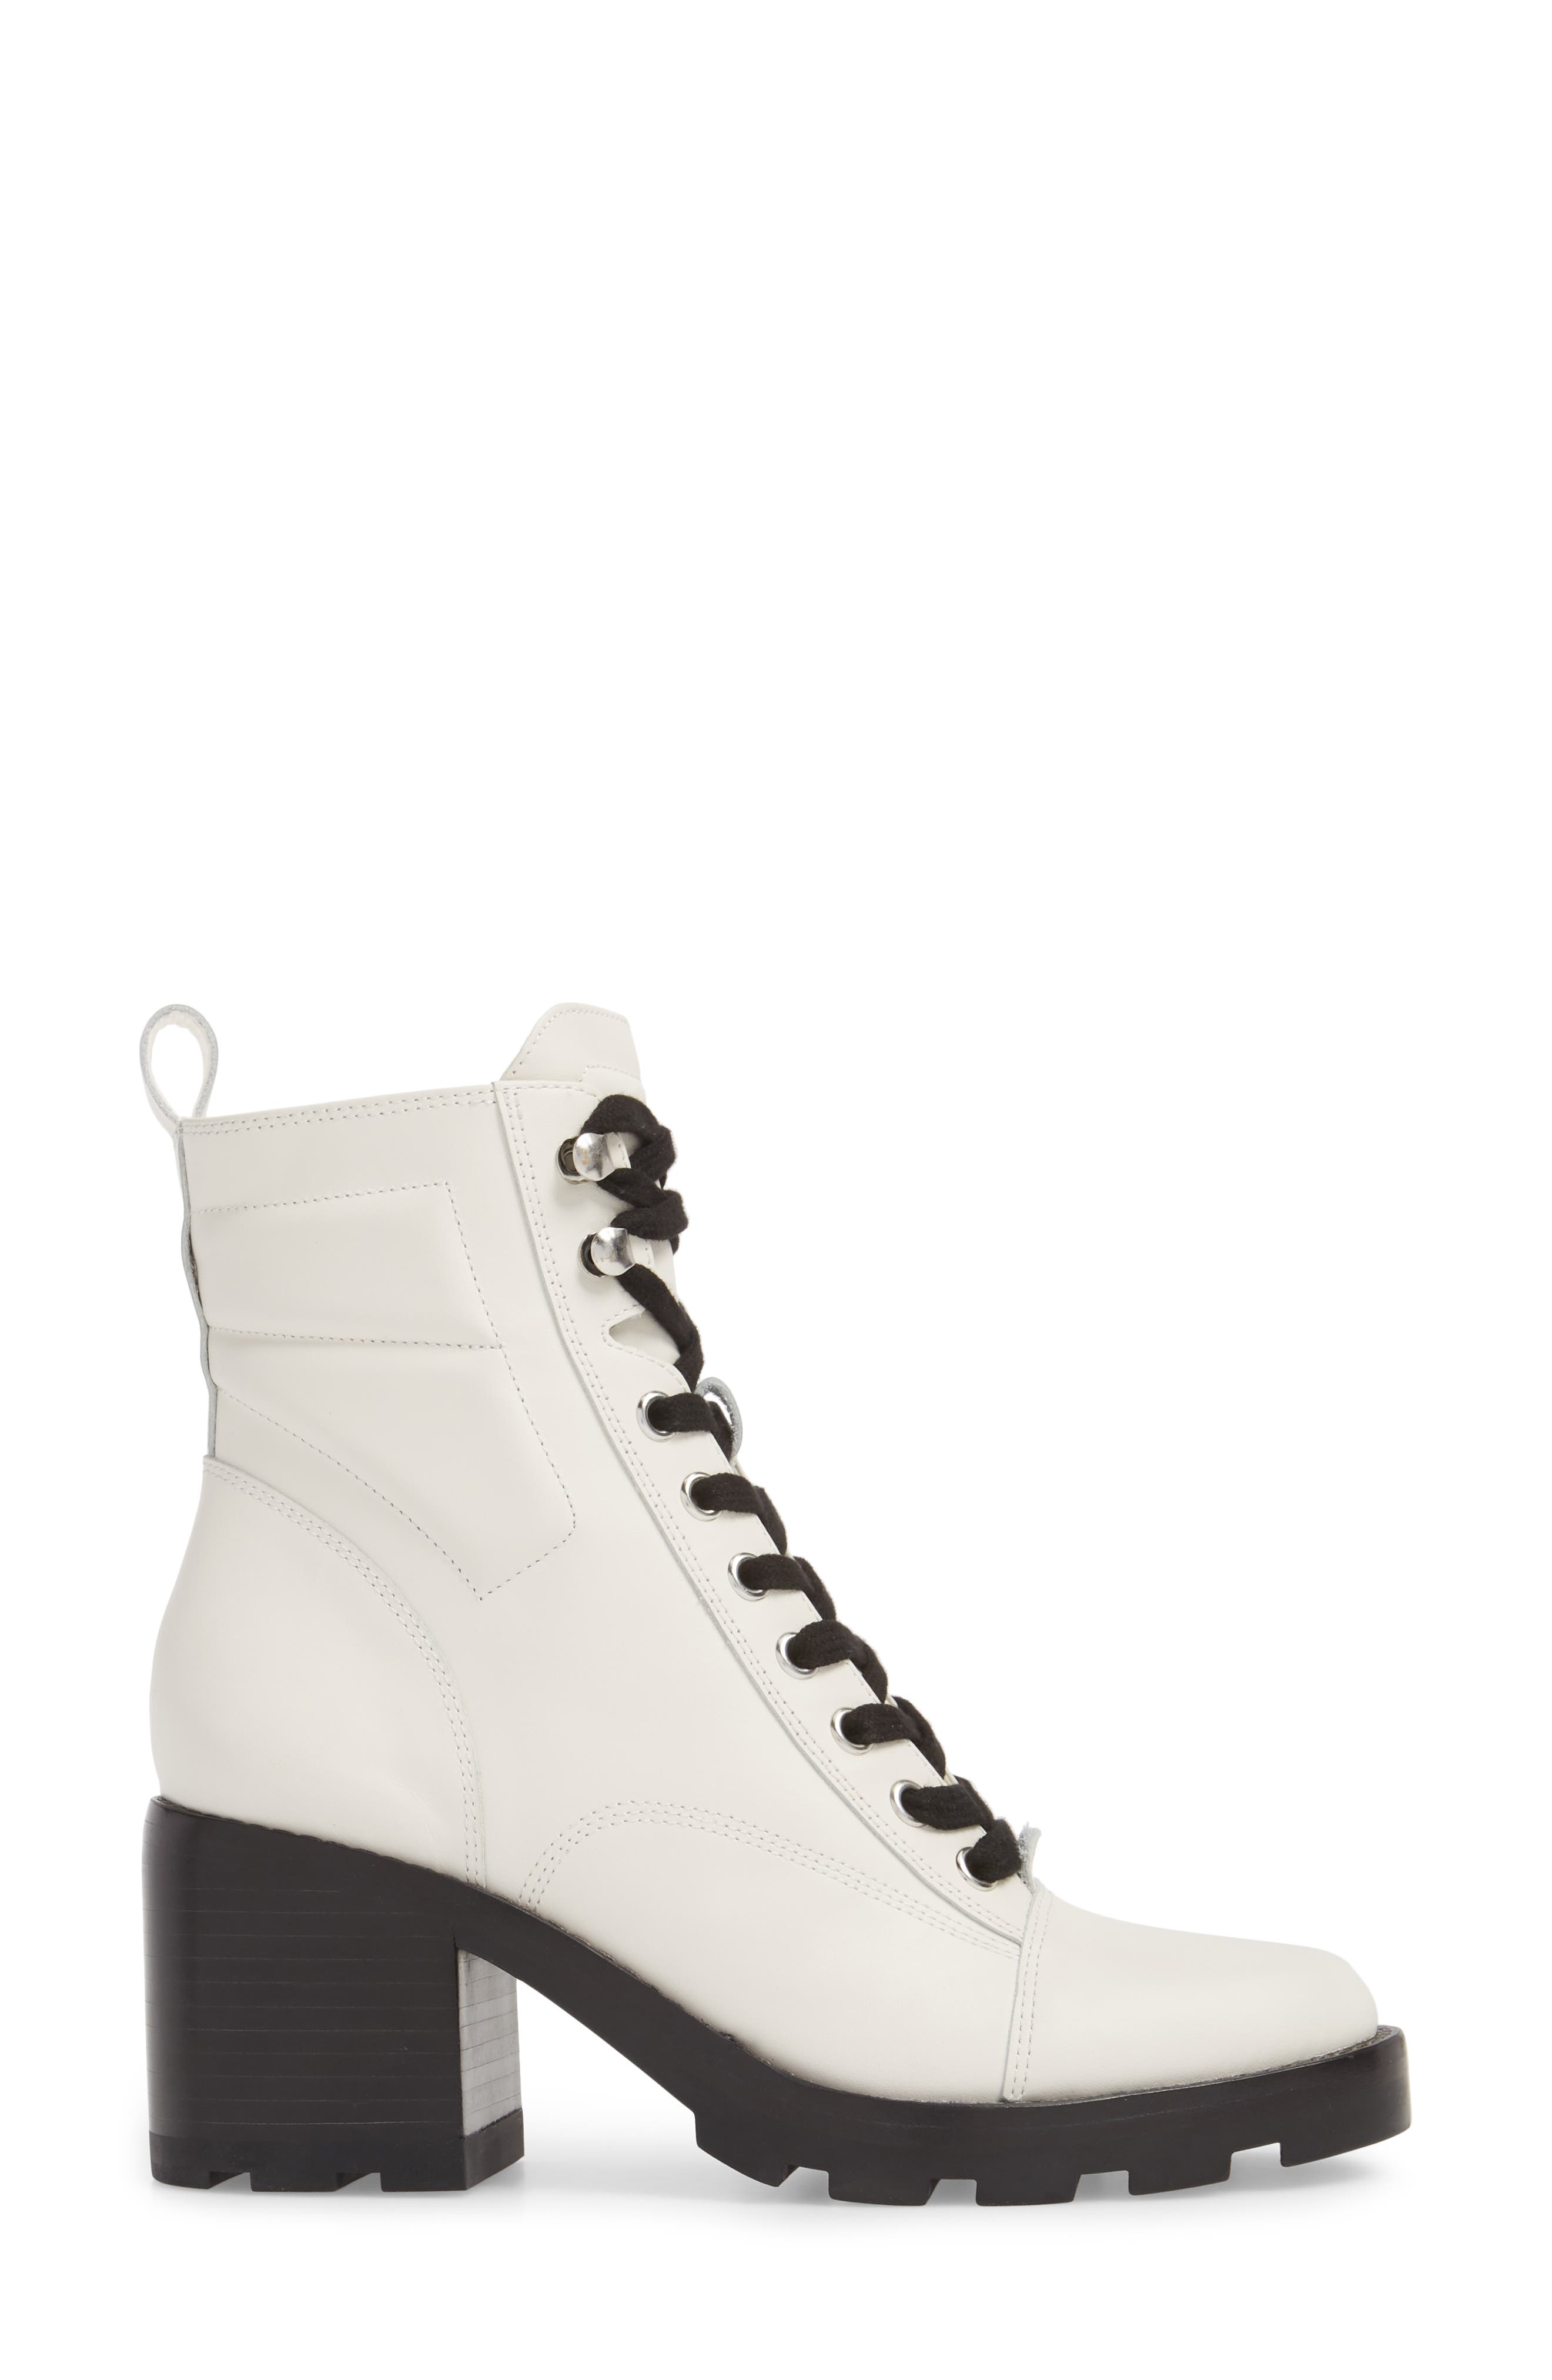 Warid Moto Bootie,                             Alternate thumbnail 3, color,                             IVORY LEATHER